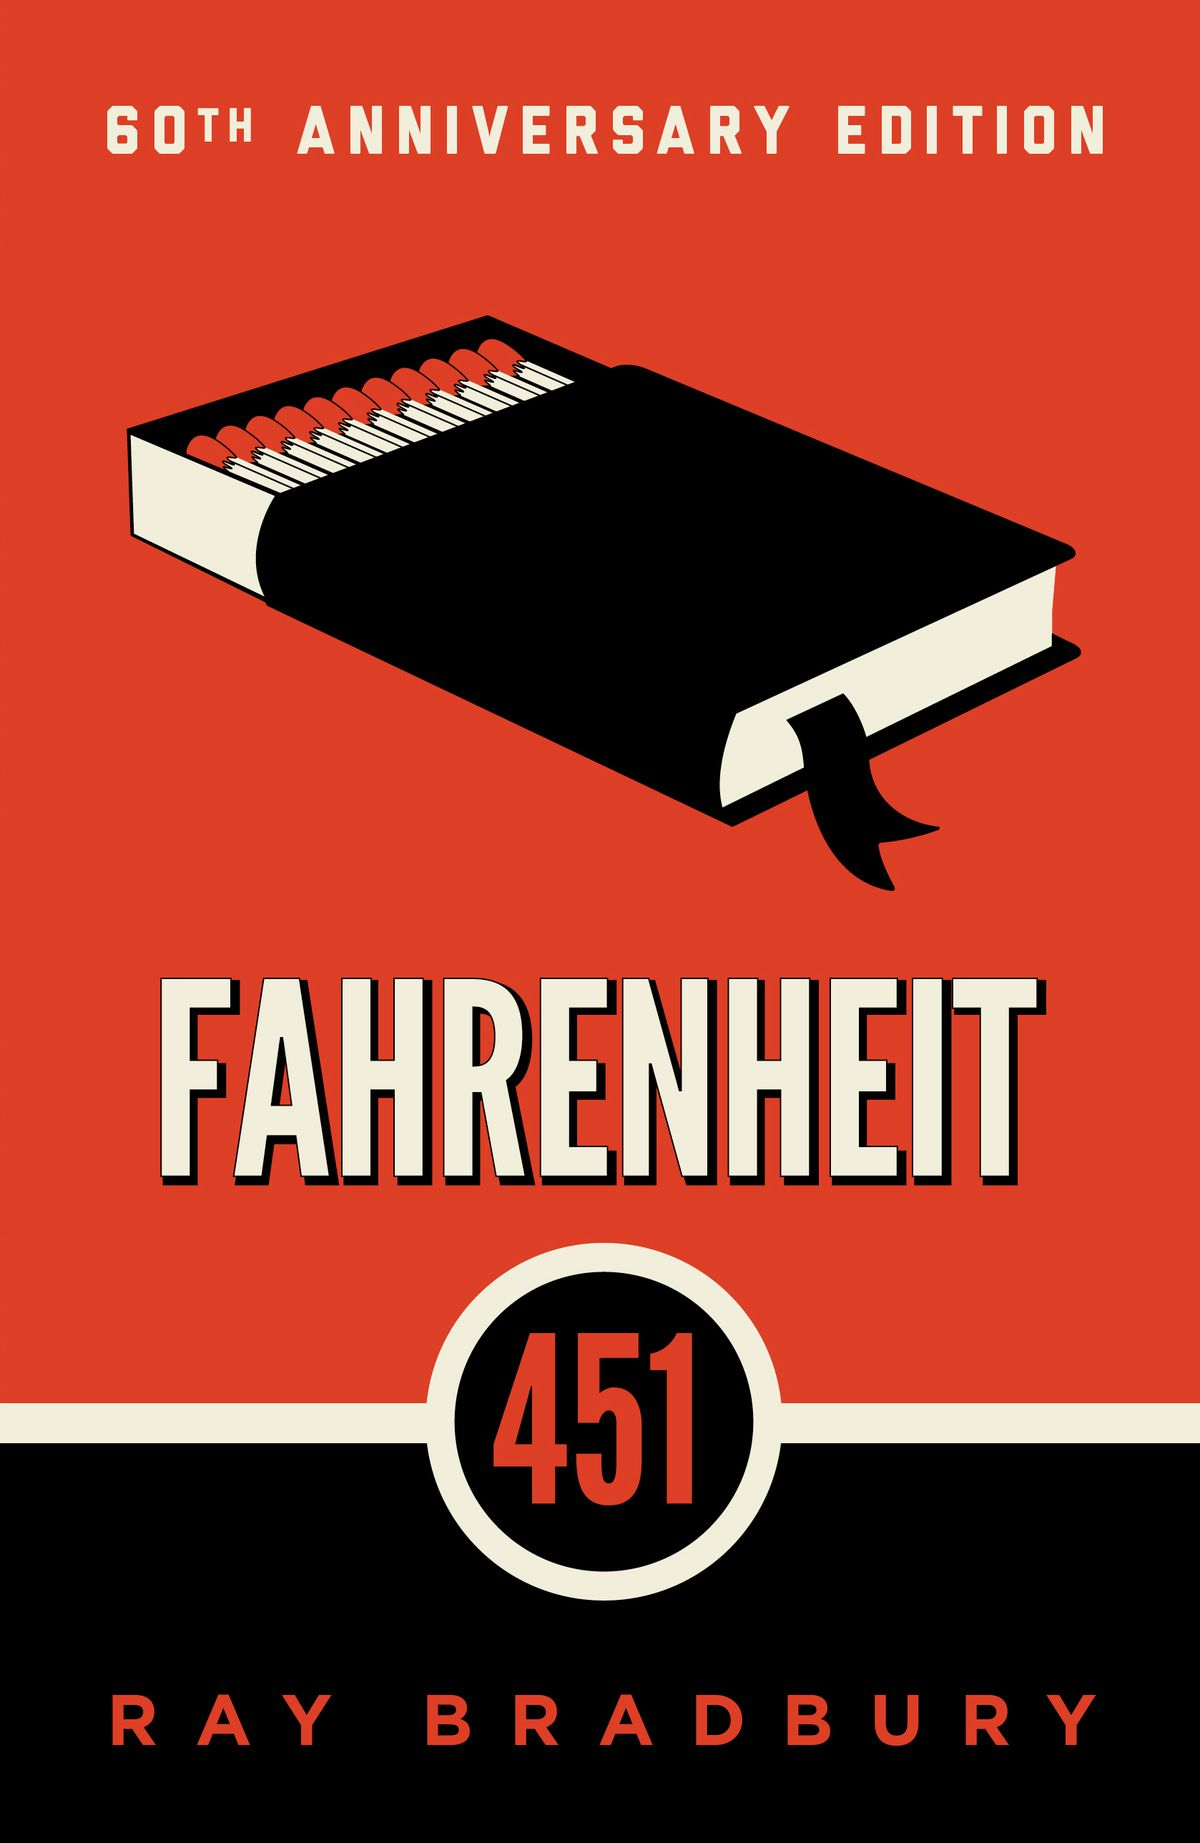 Fahrenheit 451 Bande Annonce Vf : fahrenheit, bande, annonce, HBO's, Fahrenheit, Turns, Warning, About, Media, Tirade, Against, Trends, Verge